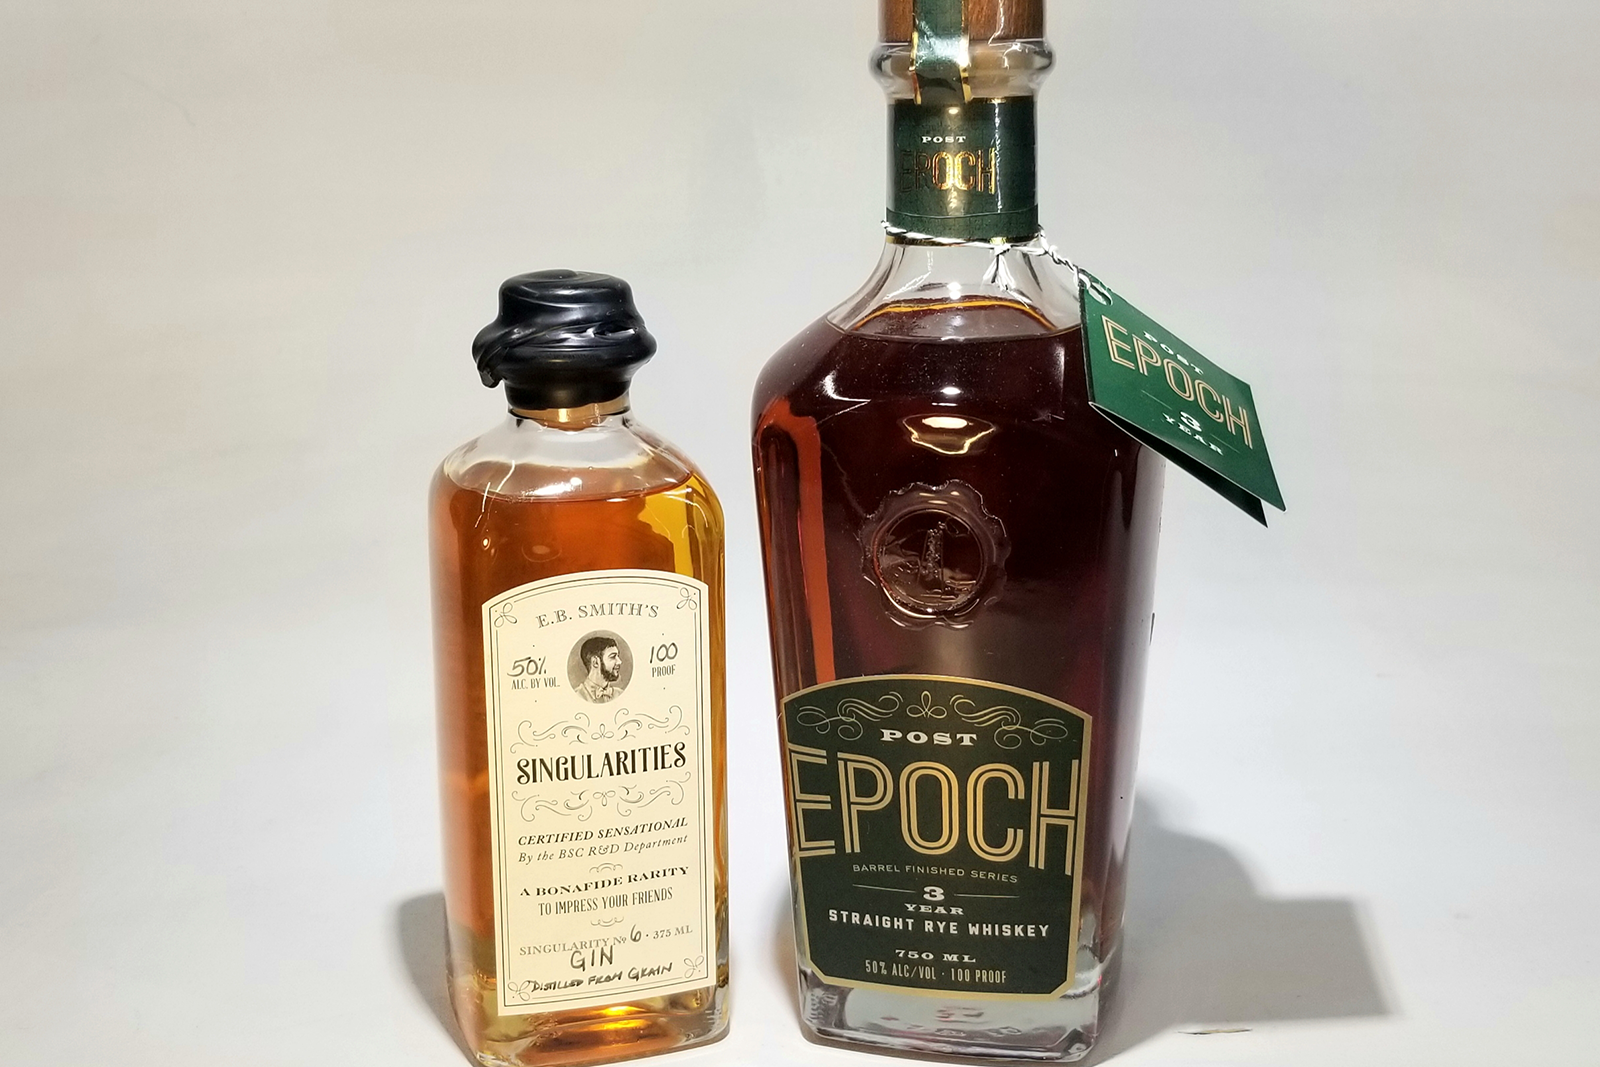 Post Epoch Whiskey, Singularities Gin